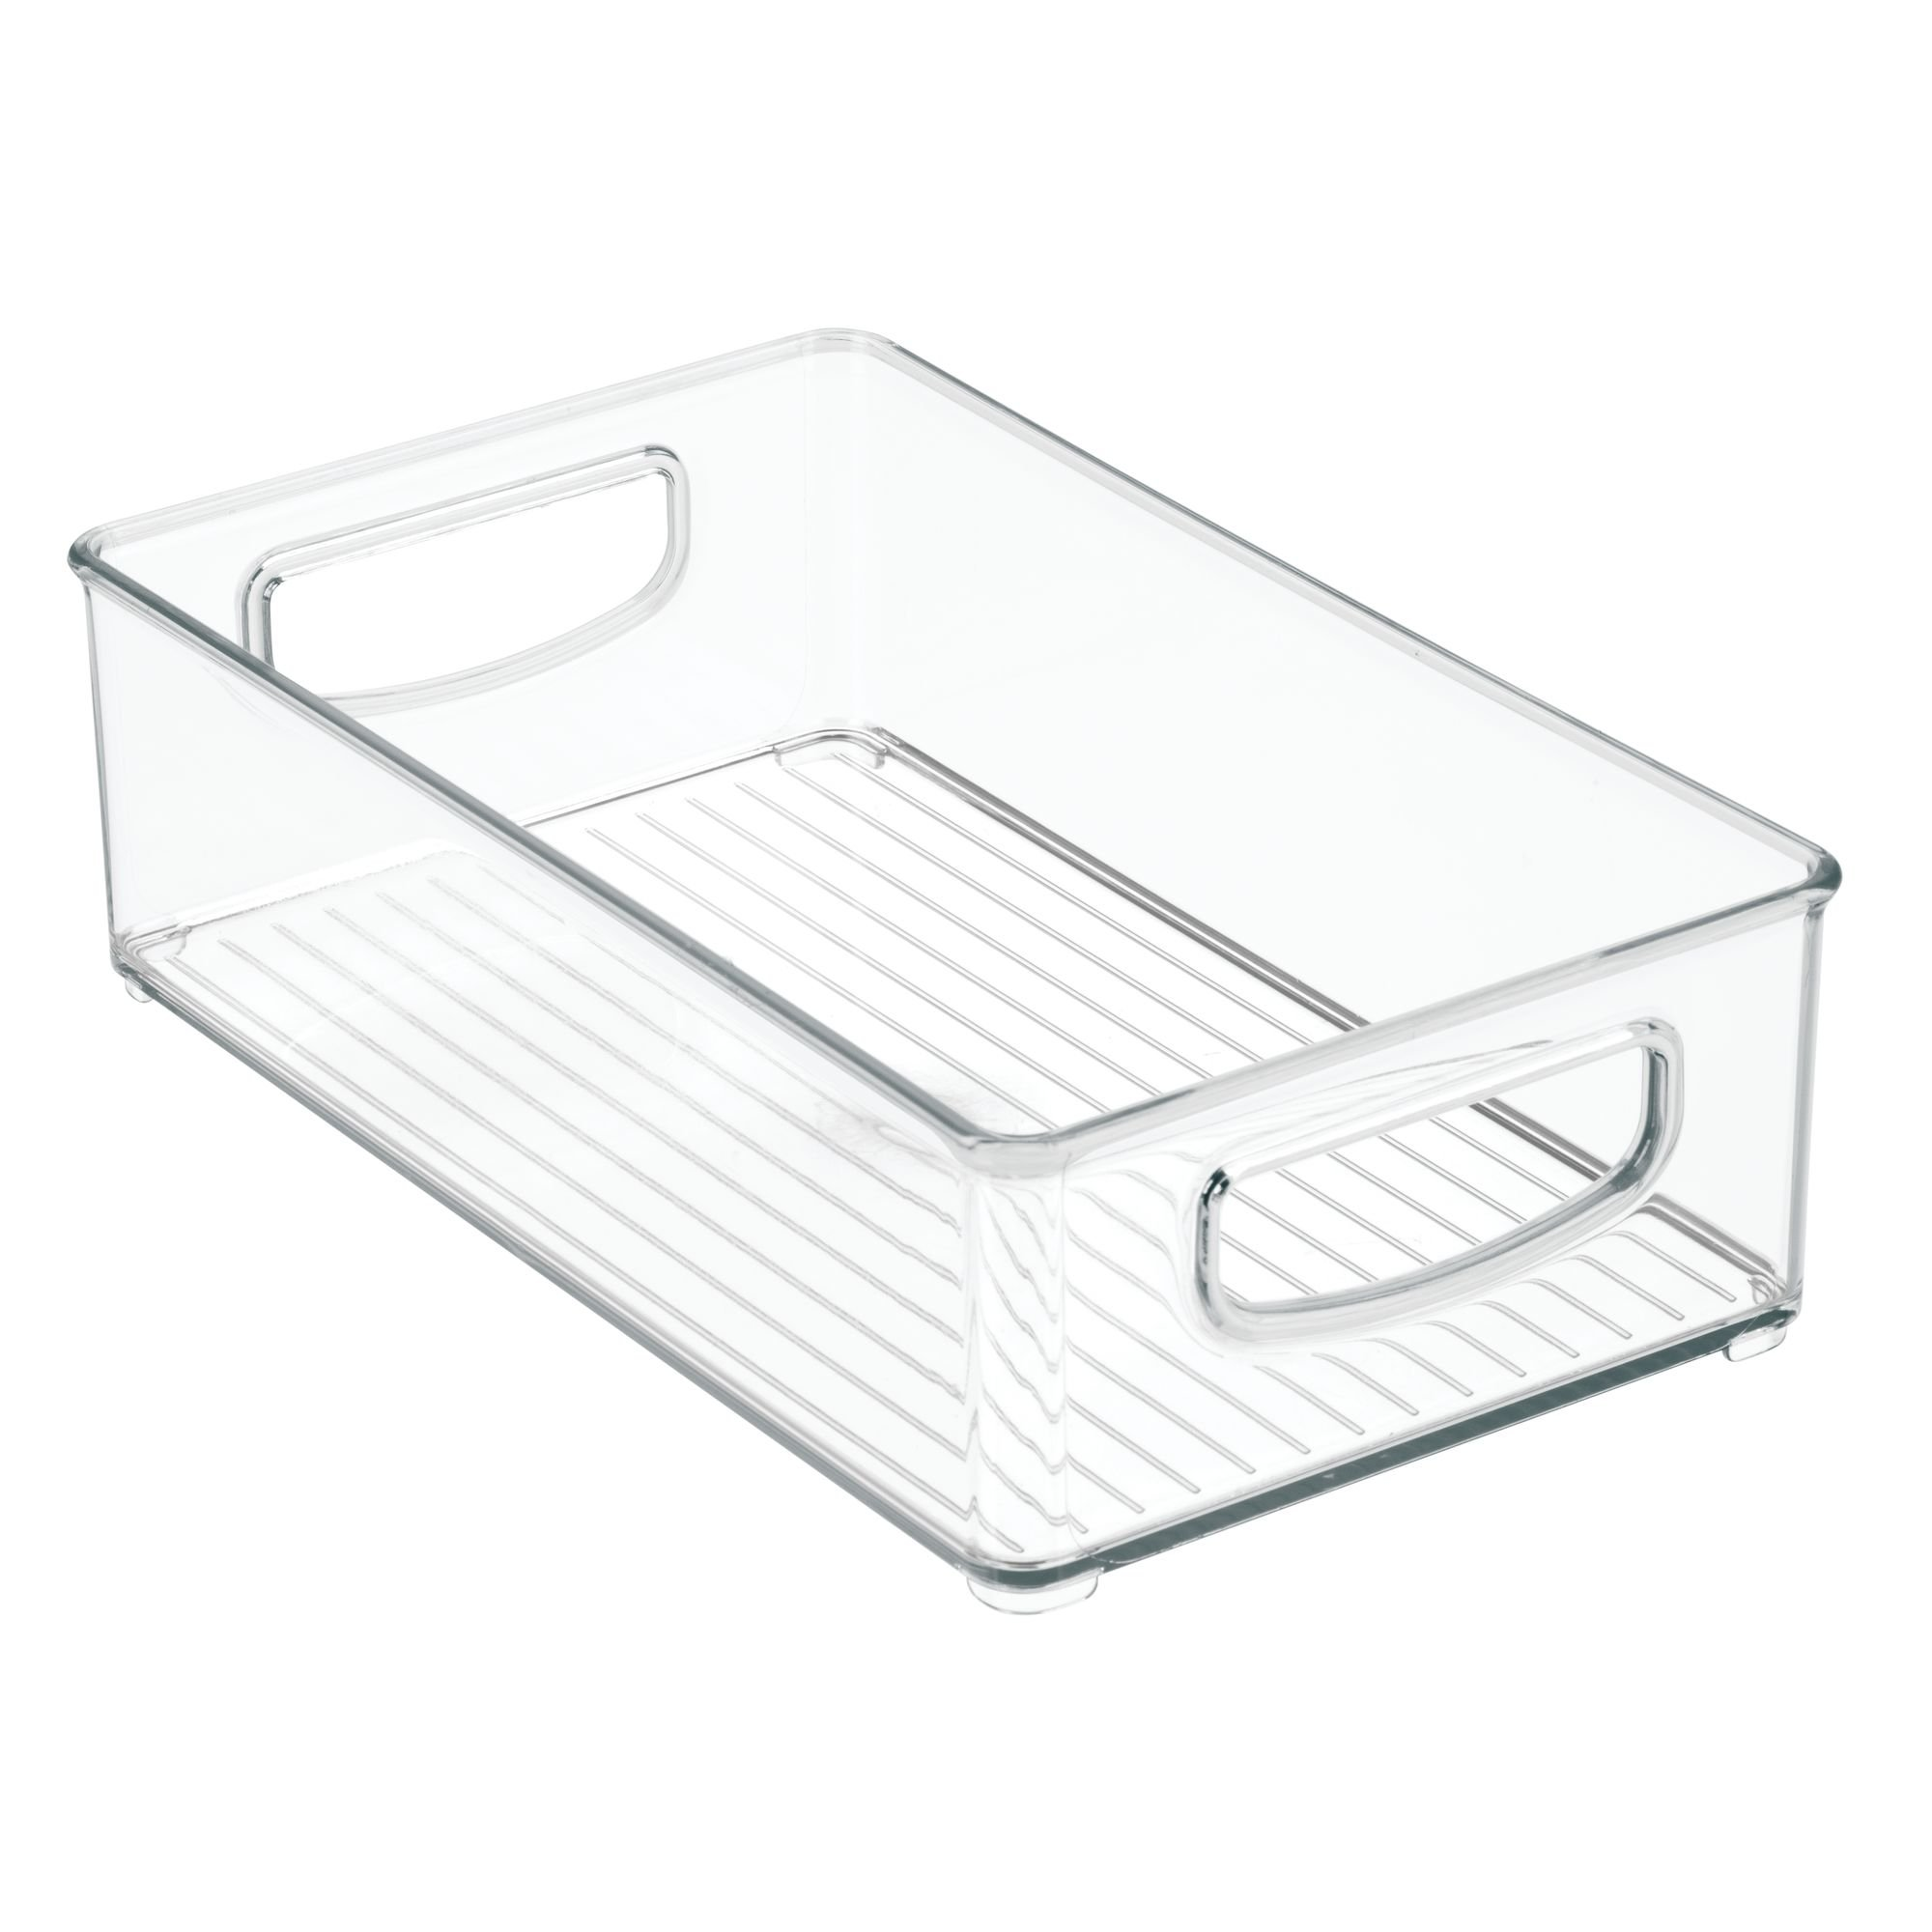 mDesign Stackable Storage Organizer Bin Tray with Built-in Handles - Holds Vitamins, Supplements, Serums, Essential Oils, Medical Supplies, First Aid Supplies - 3'' High - Pack of 2, Clear by mDesign (Image #7)